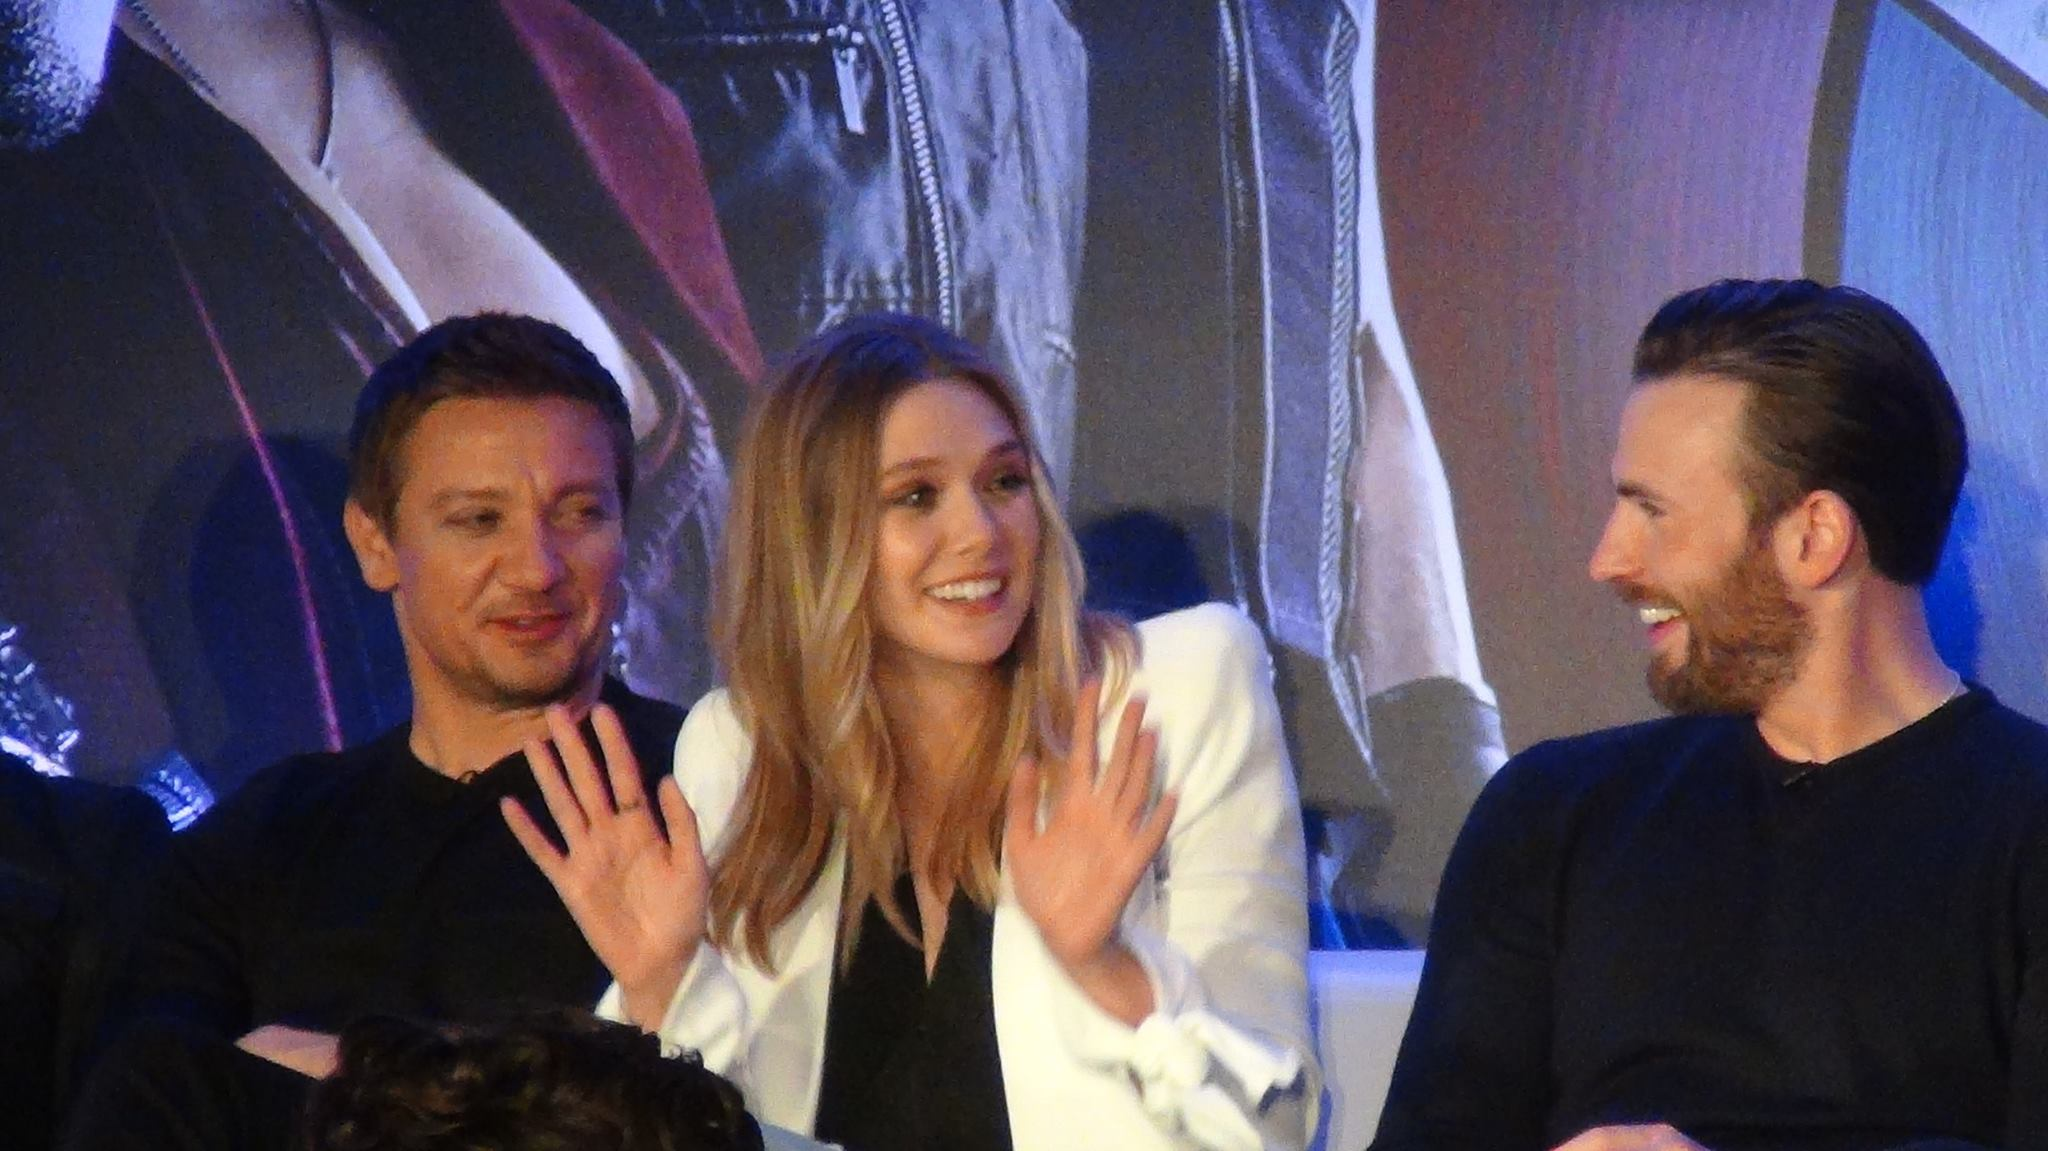 12977065 988910787859648 4111106185247449977 o Six best moments of #TeamCap Civil War press conference: Smack talking Team Iron Man, Stucky, and more